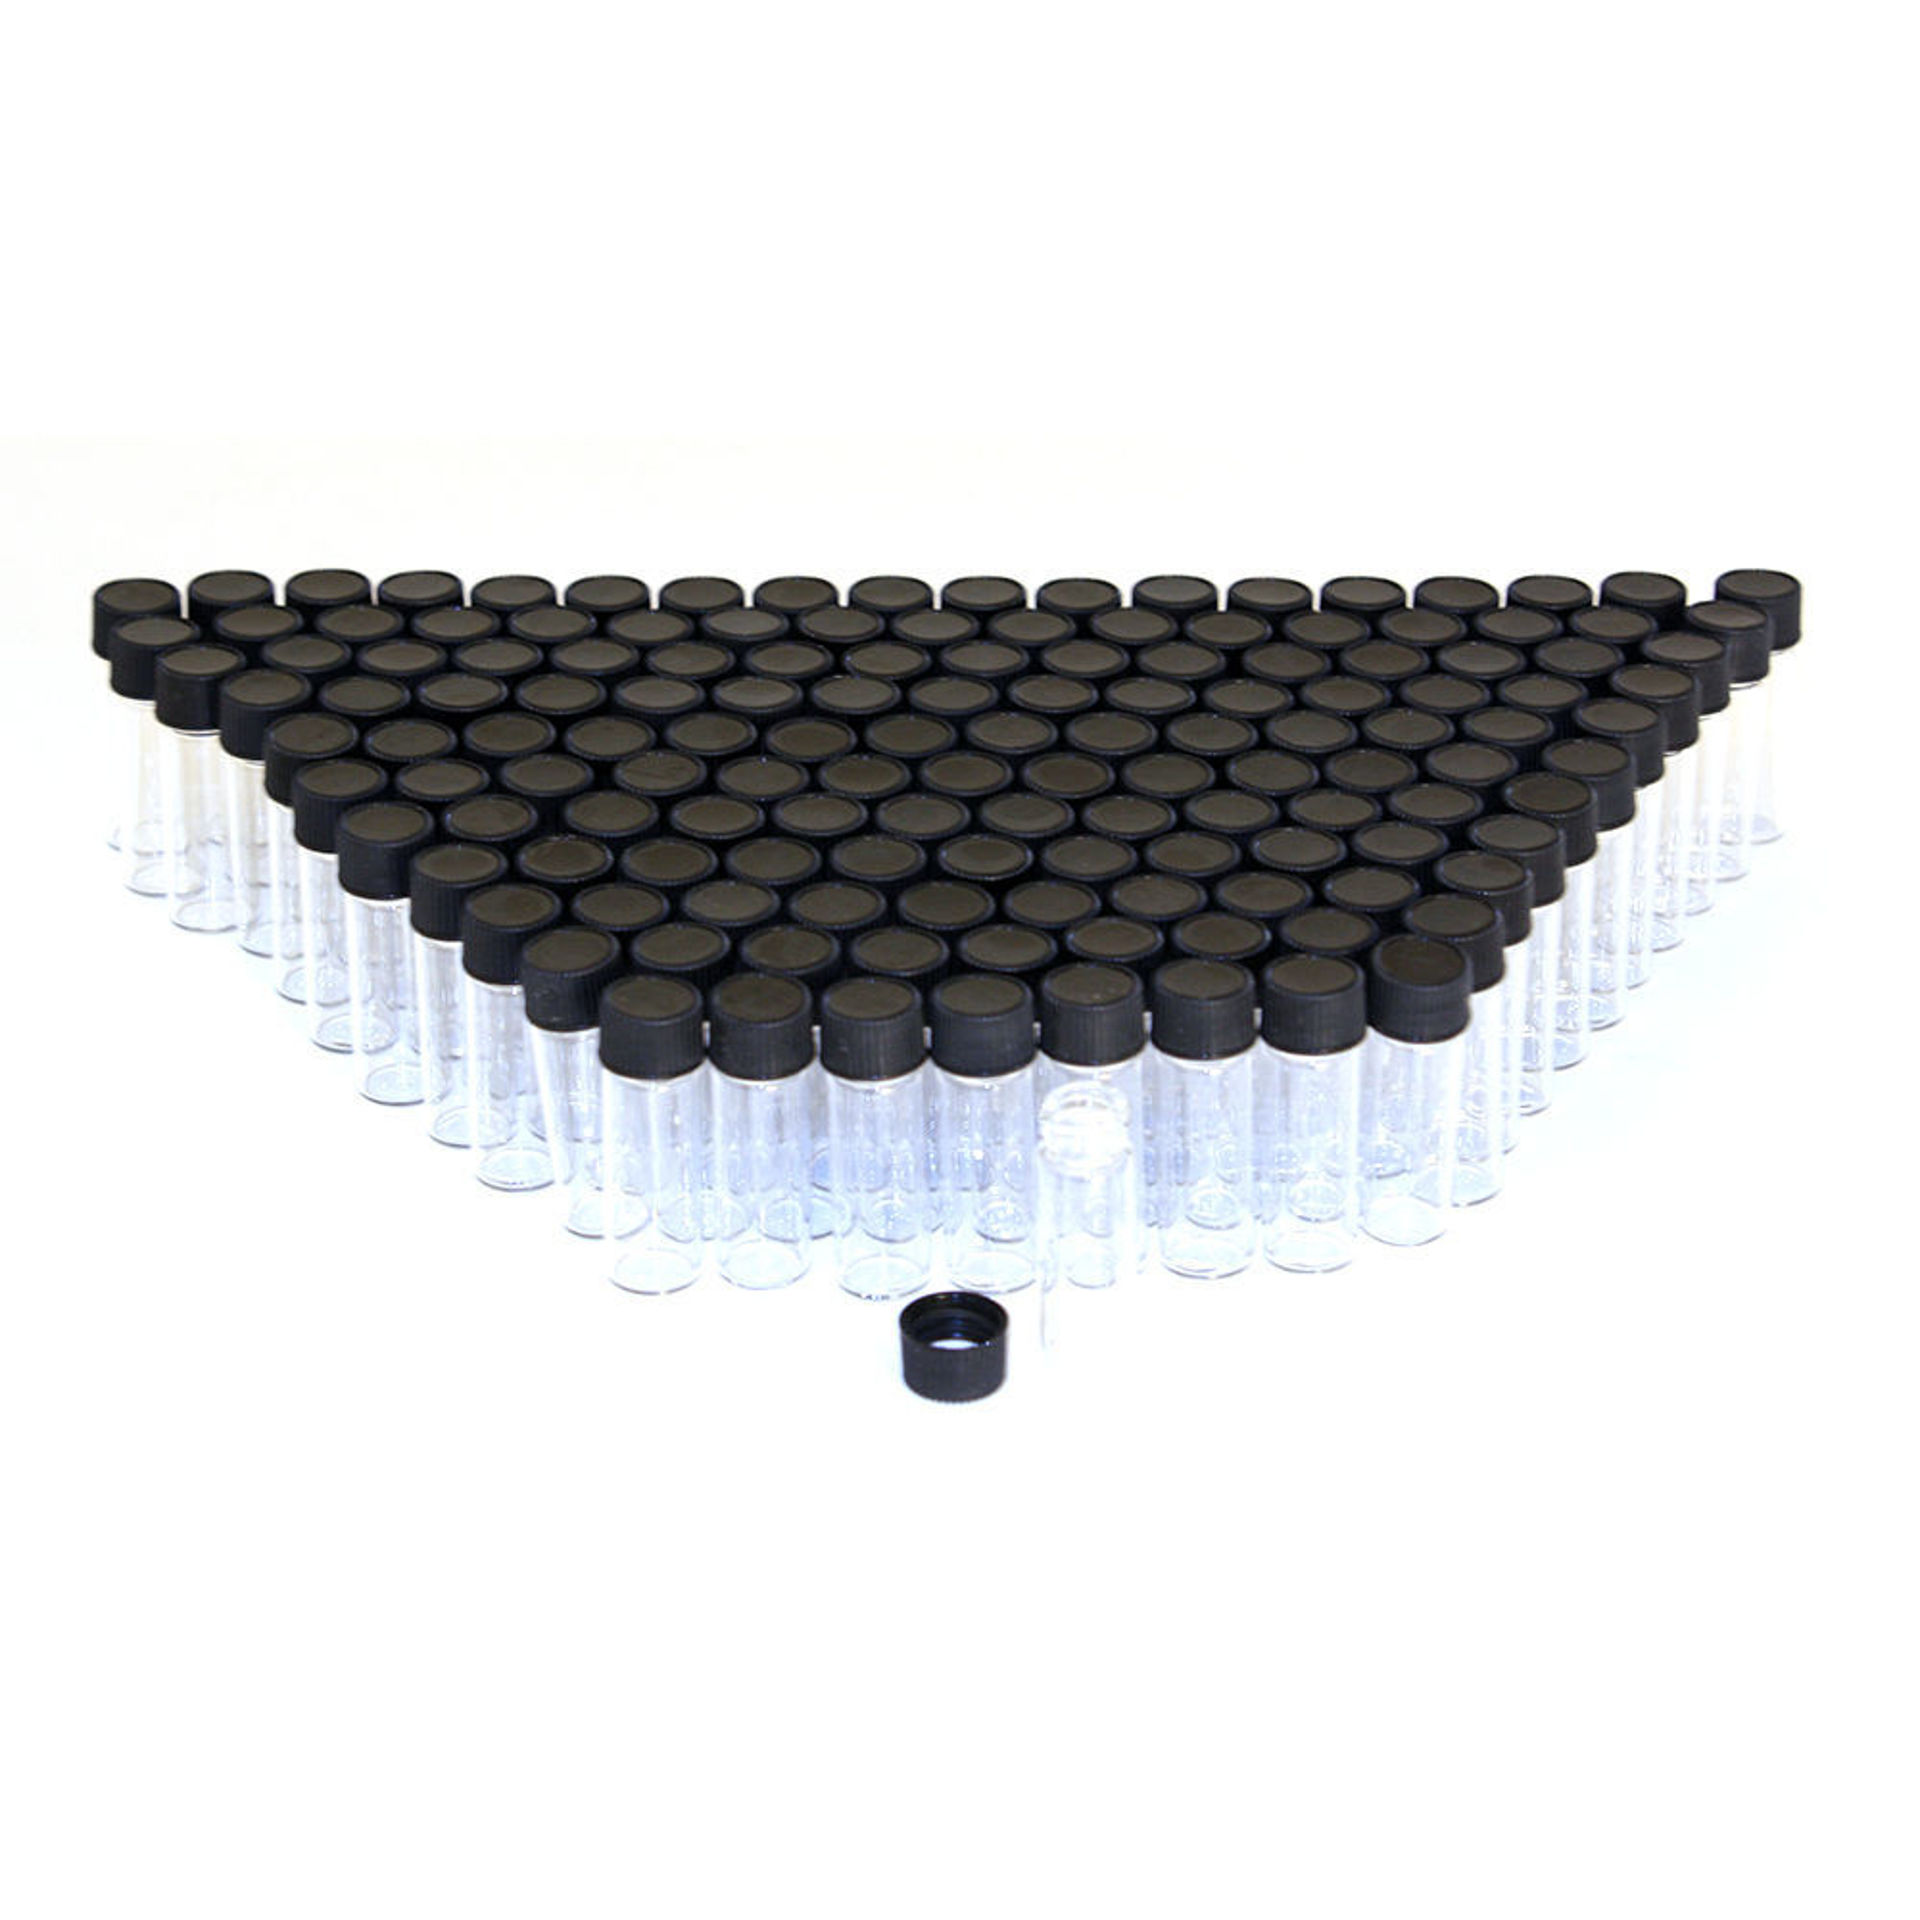 Picture of Case Of 1 Dram Glass Bottles - 3,456